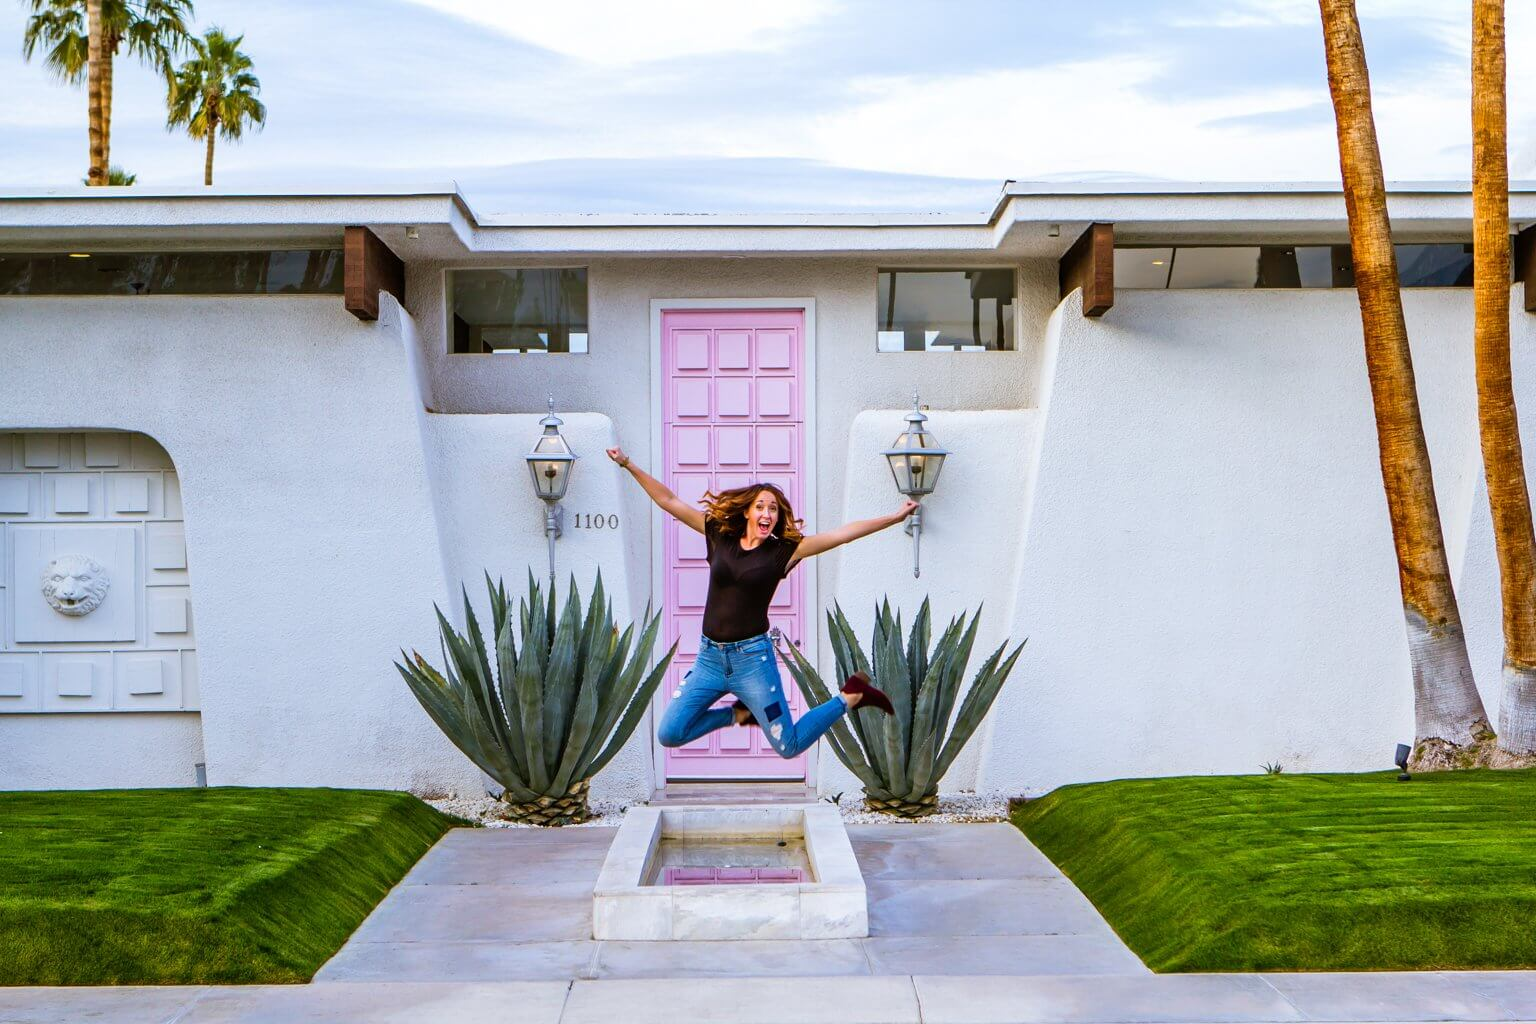 Megan jumping in front of that pink door famous house in palm springs